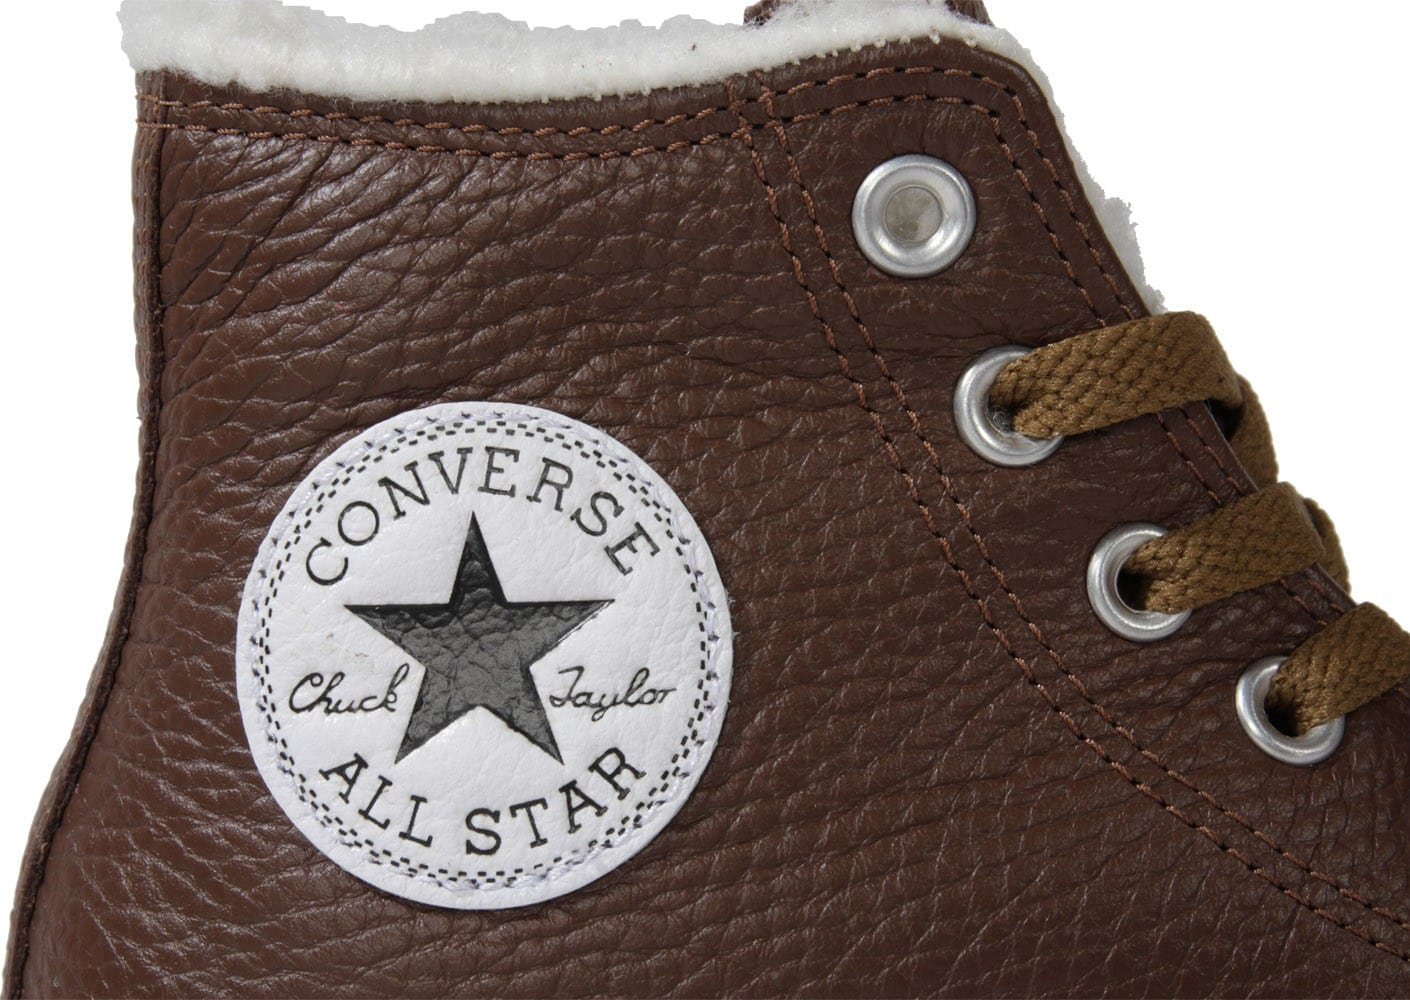 Converse Chuck Taylor All star Cuir Chocolat Chaussures